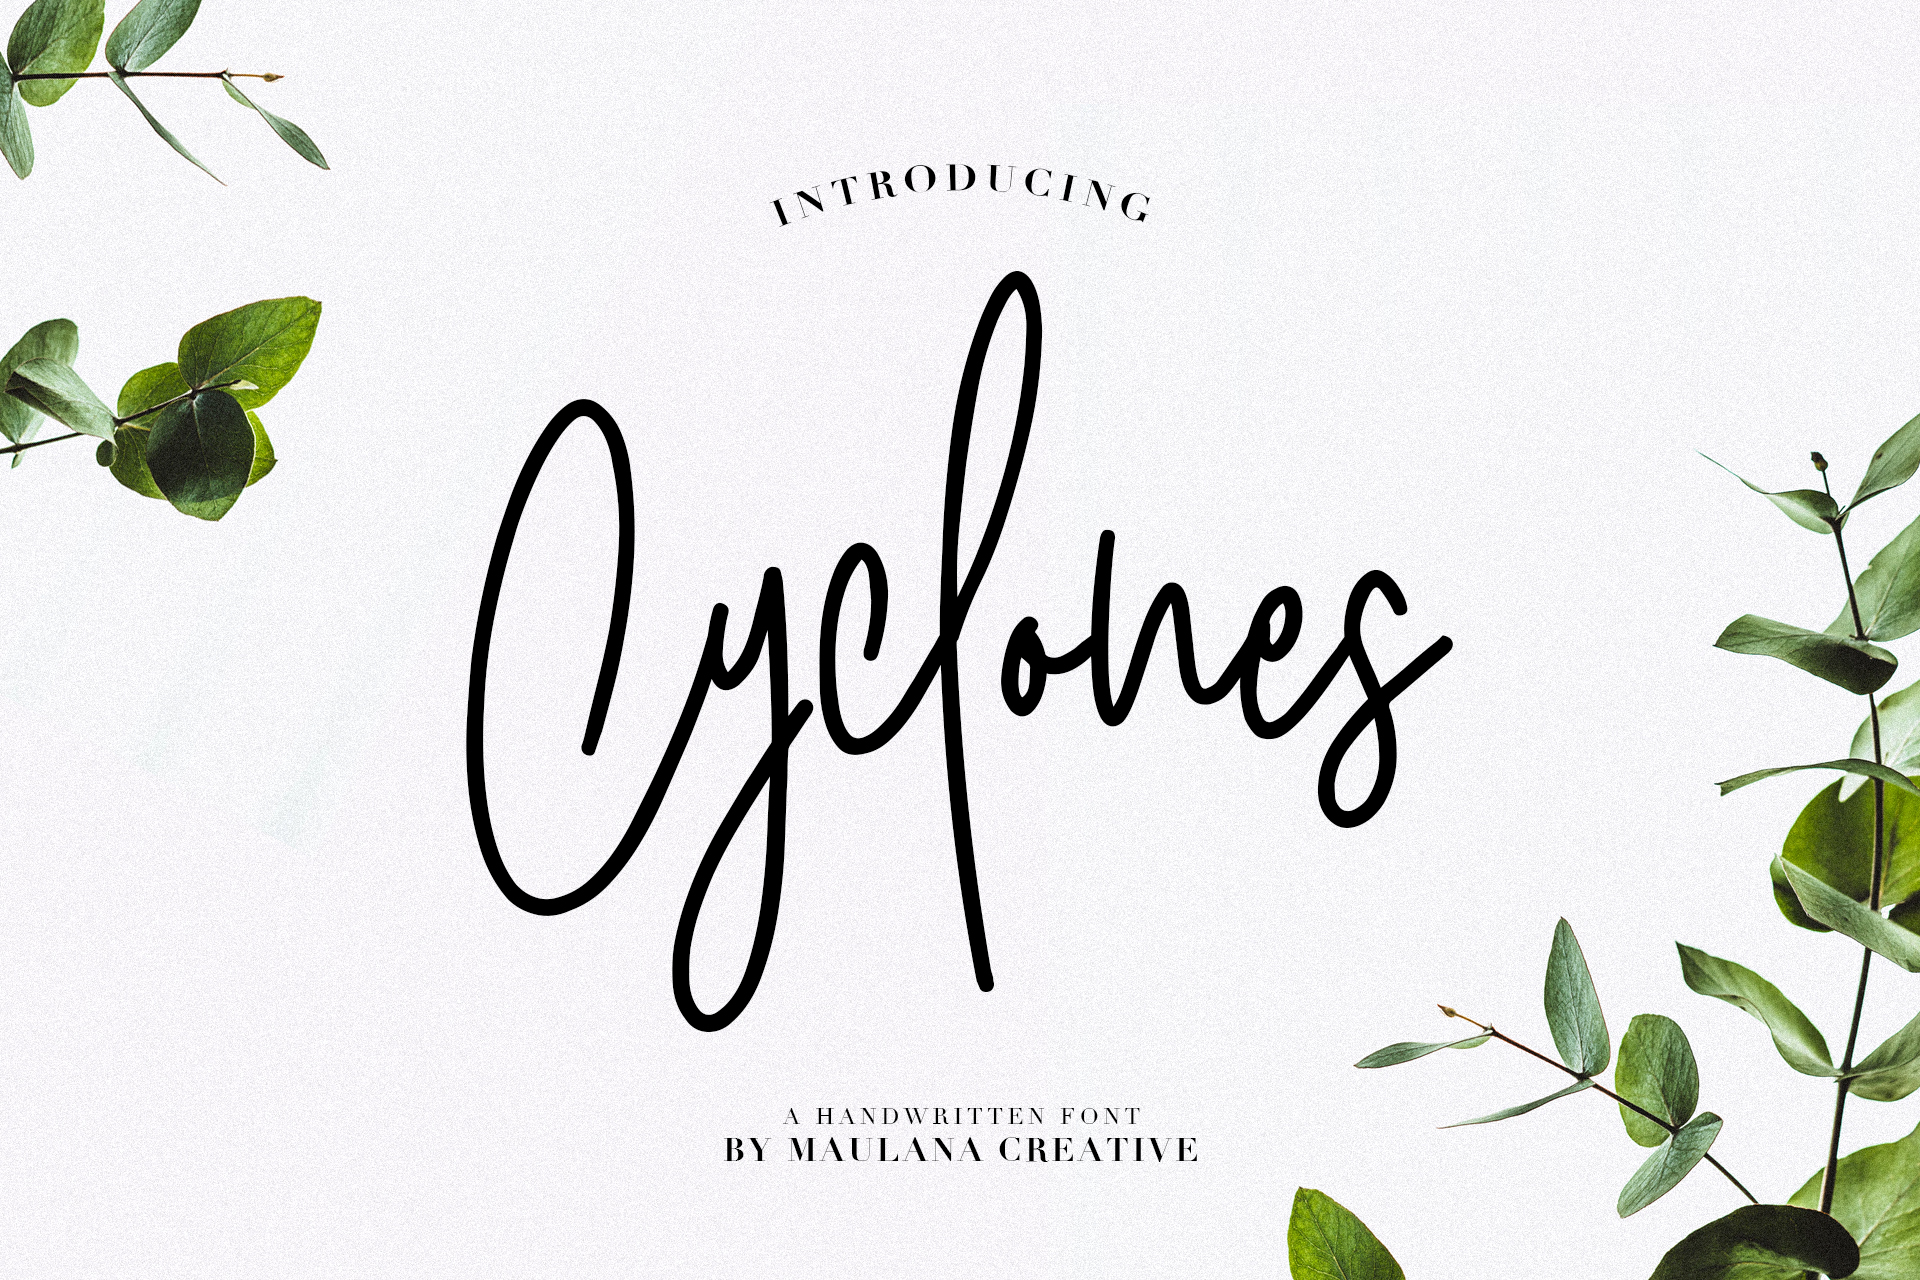 Cyclones Signature Brush Font example image 1